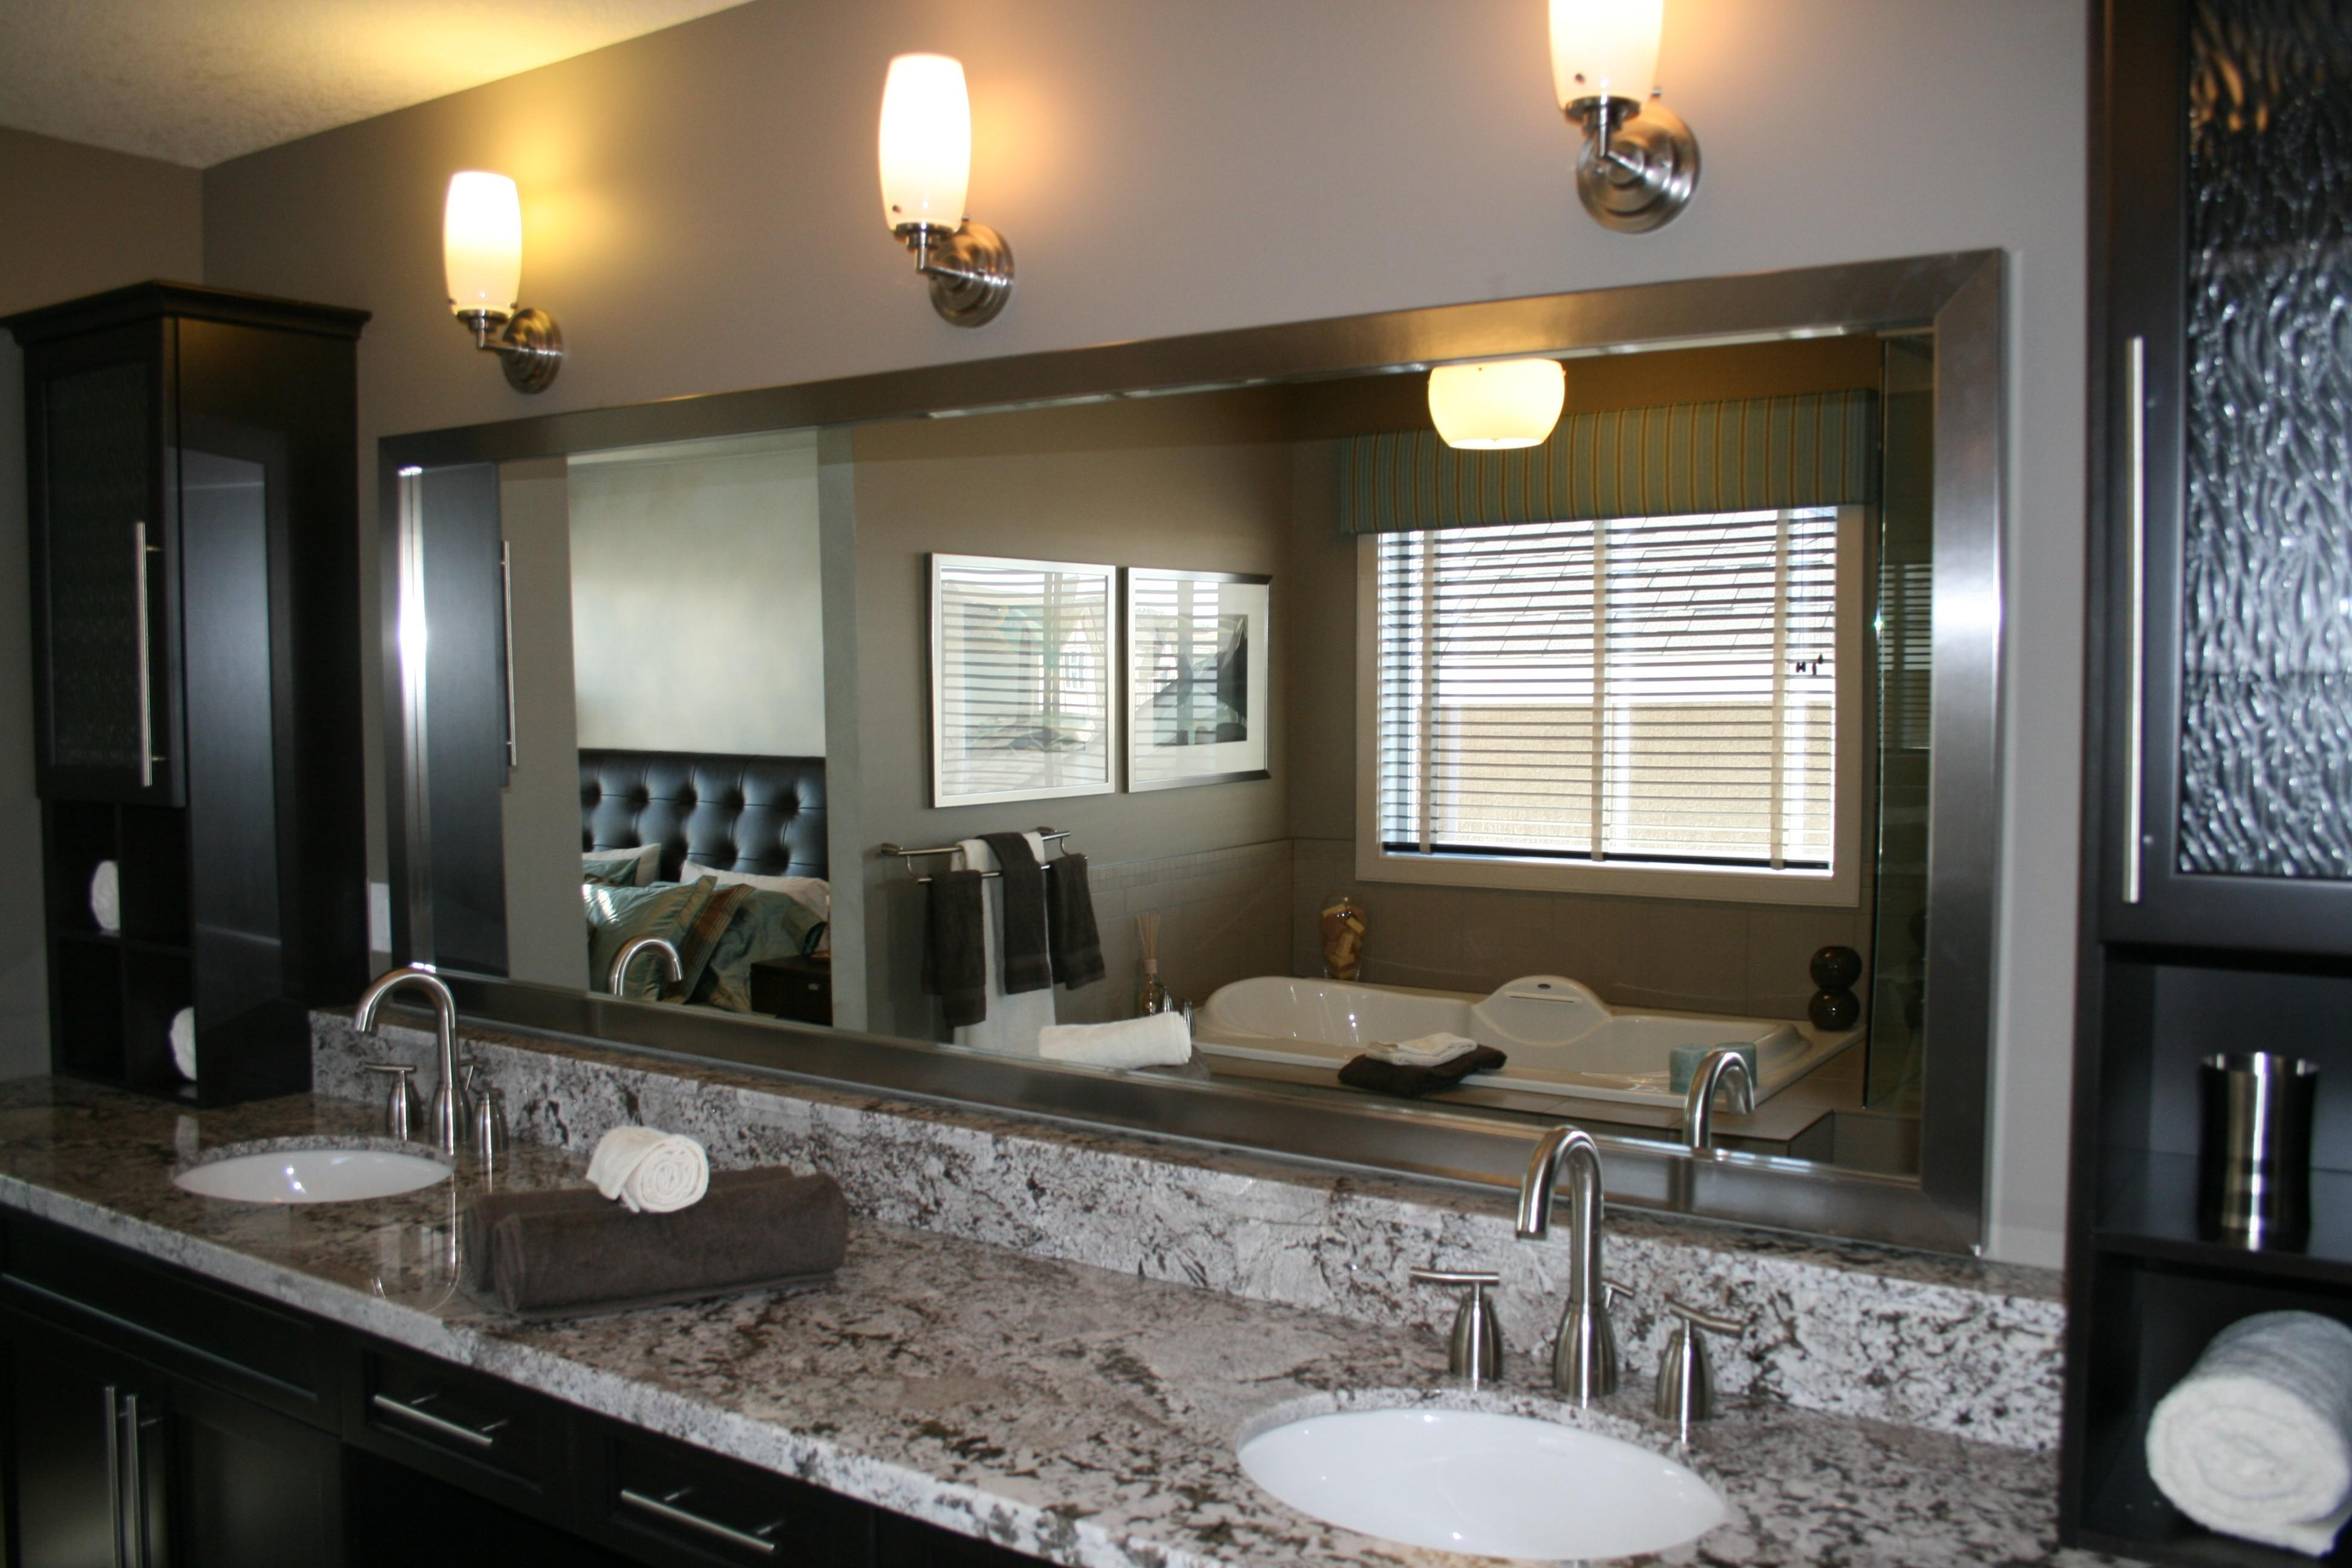 Firebrandcattery Creating Oversized Wall Mirrors: 20 Inspirations Large Framed Bathroom Wall Mirrors